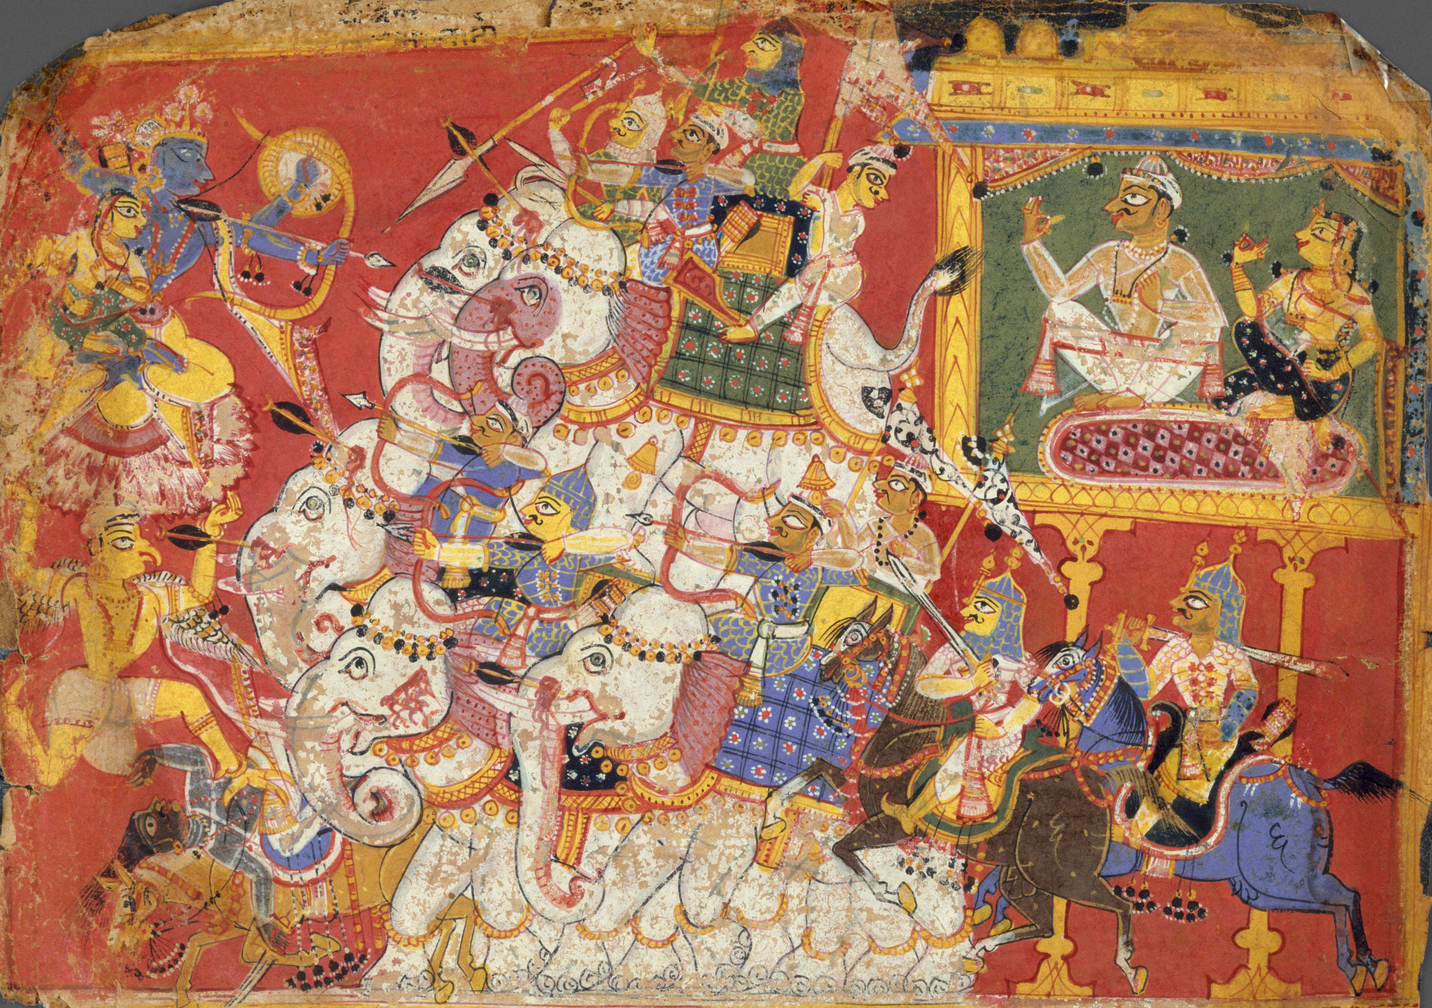 Battle between Krishna and Narakasura